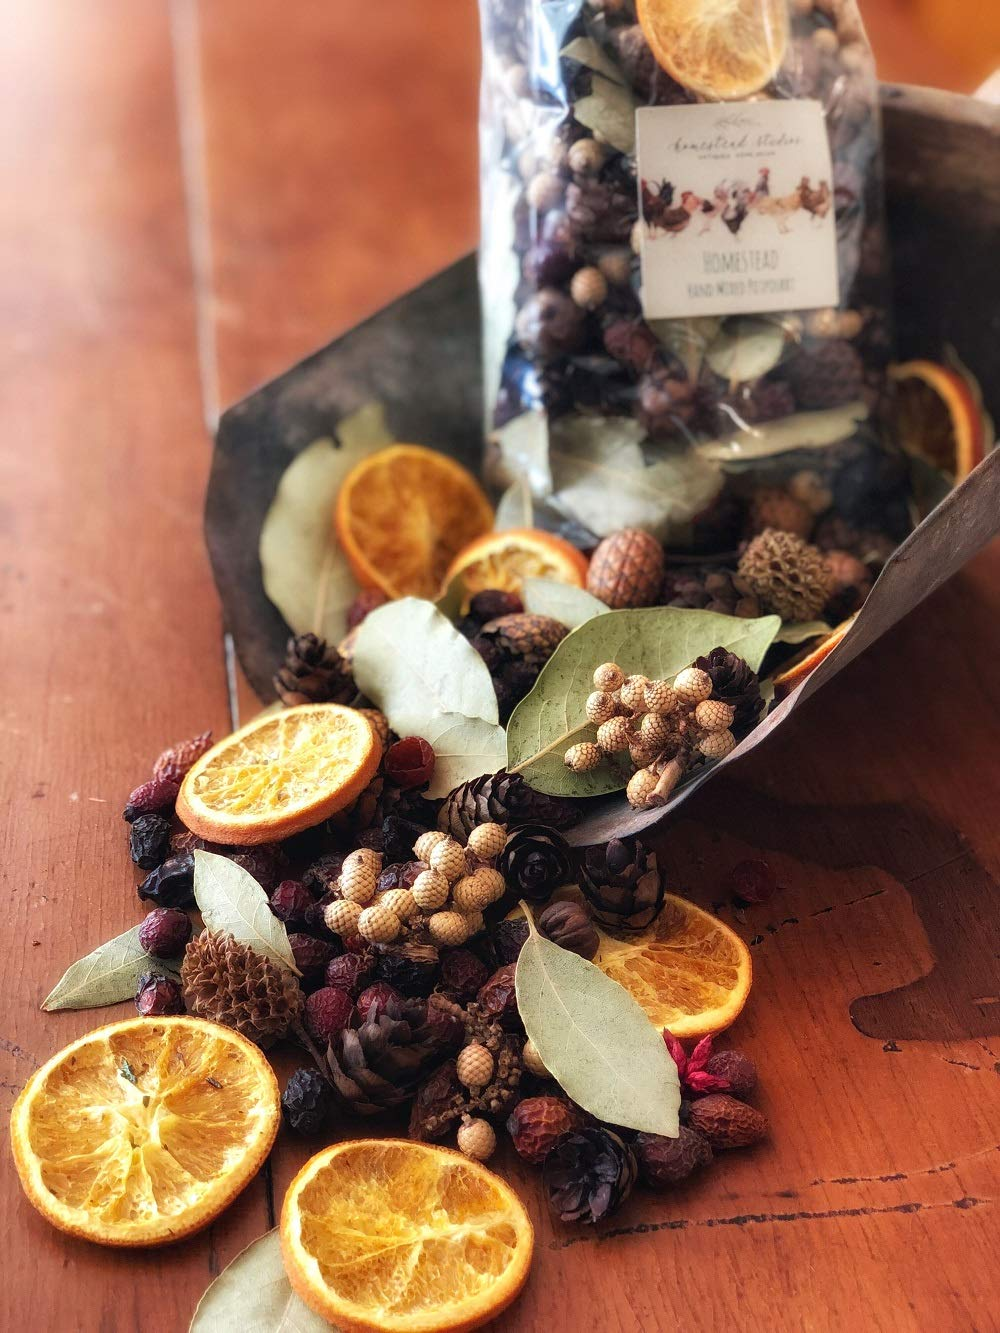 Homestead Studios Homestead Potpourri Unique Dried Fruits, pods and Other botanicals Chosen to Match The Season and Scent! Batches are Hand Mixed by Homestead Studios (Image #1)